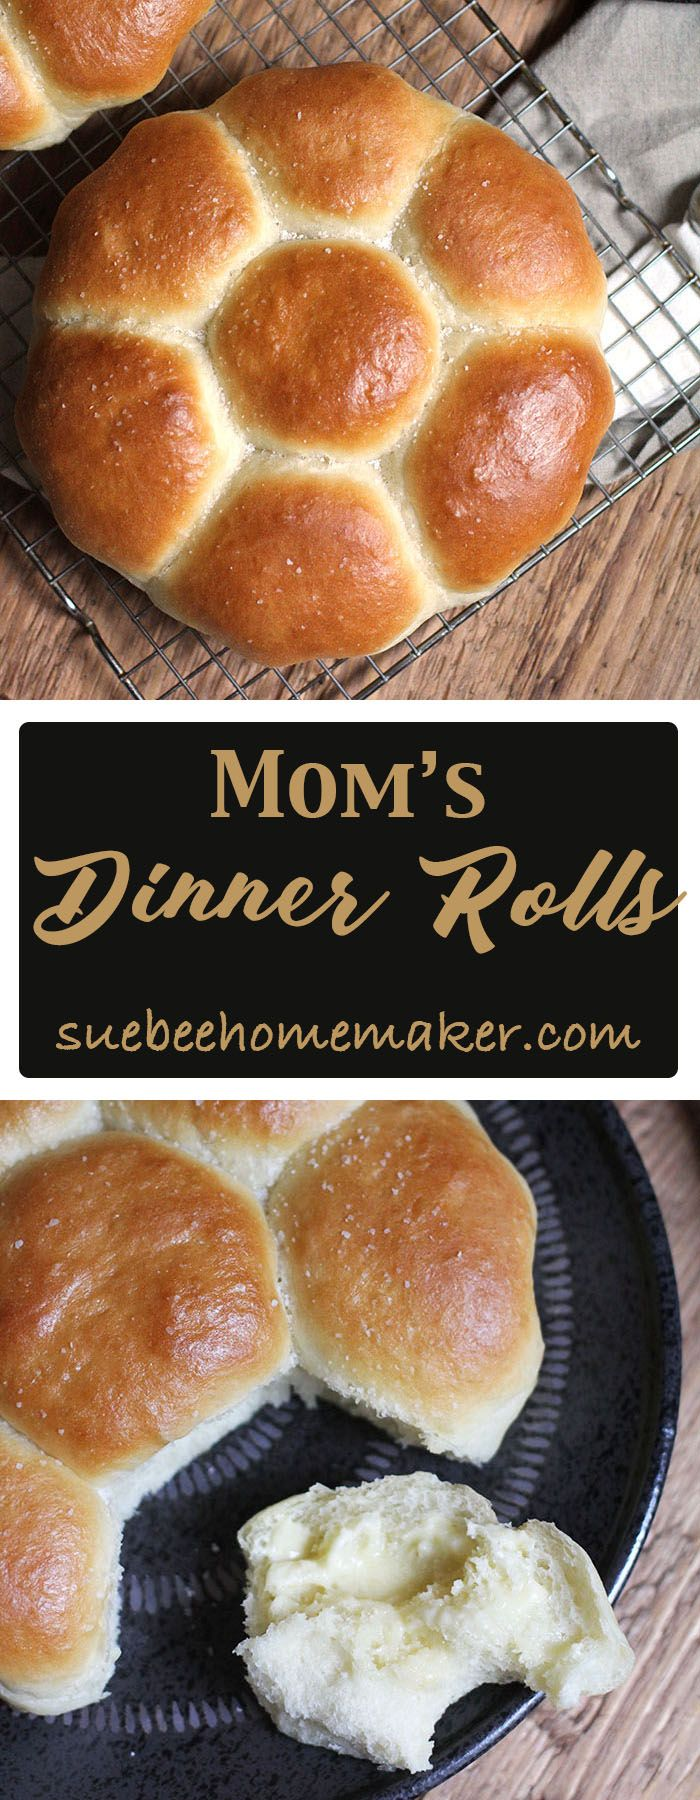 Mom's Dinner Rolls are soft and fluffy, and are a perfect accompaniment to holiday dinners. Eat them as little sandwiches or plain with a pat of butter.